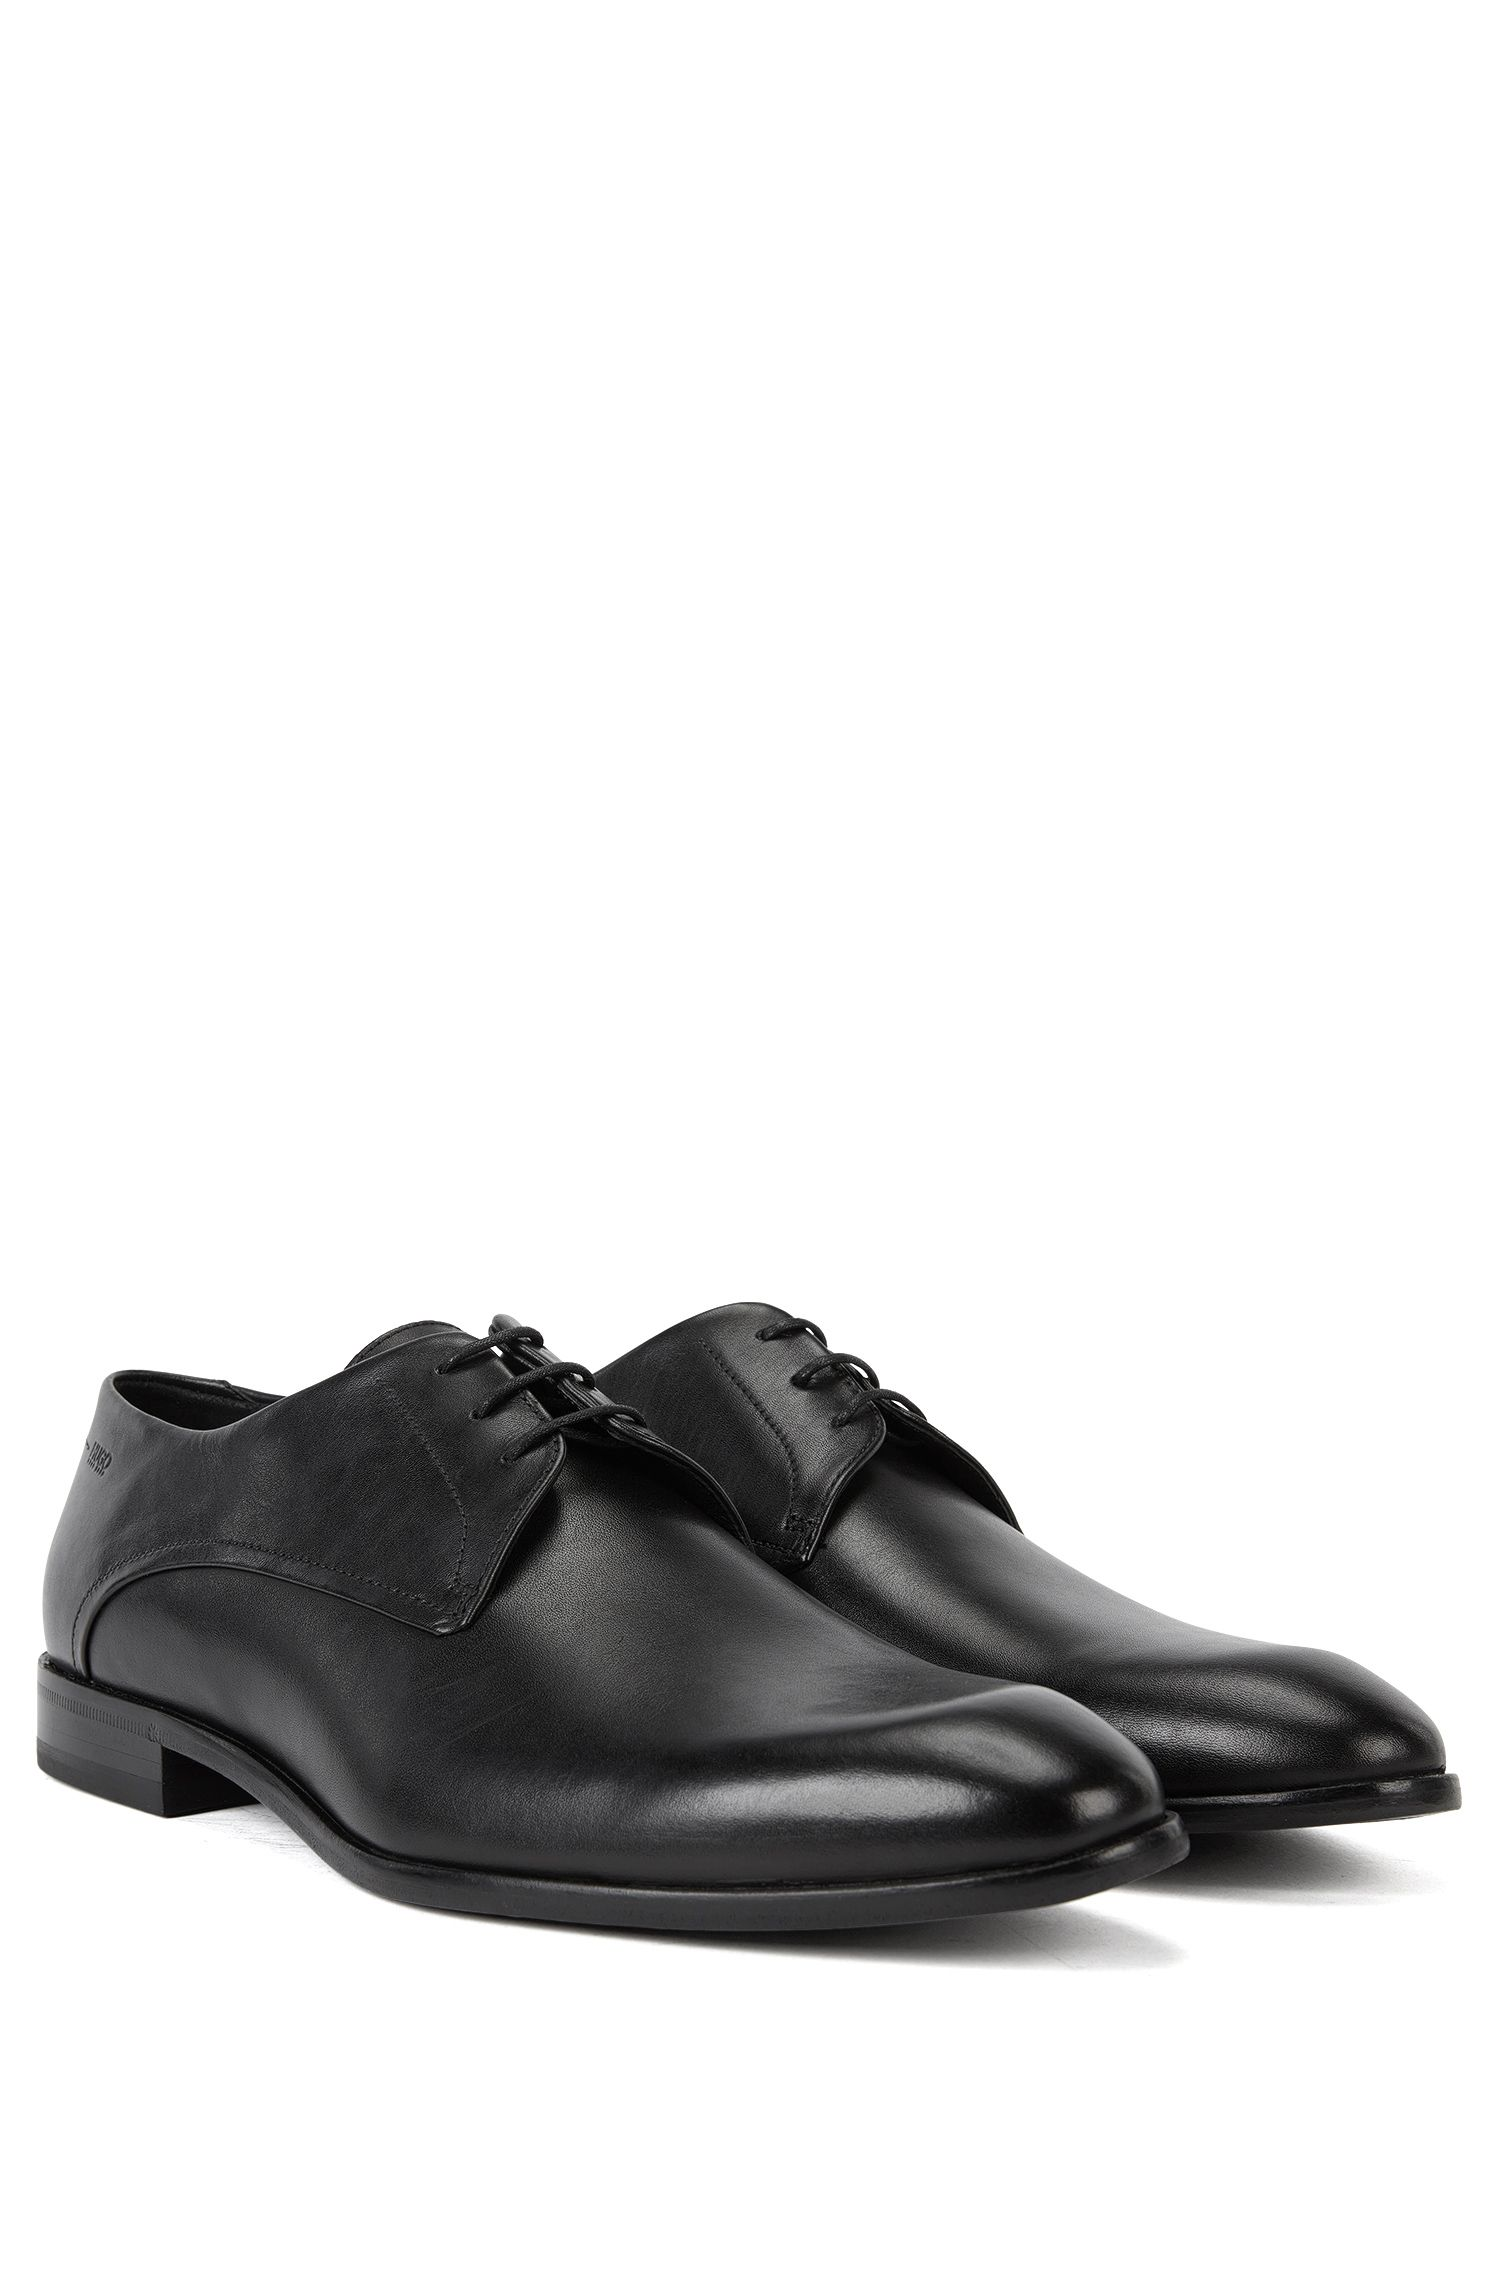 Leather Derby shoes with turned-and-stitched detail by HUGO Man, Black